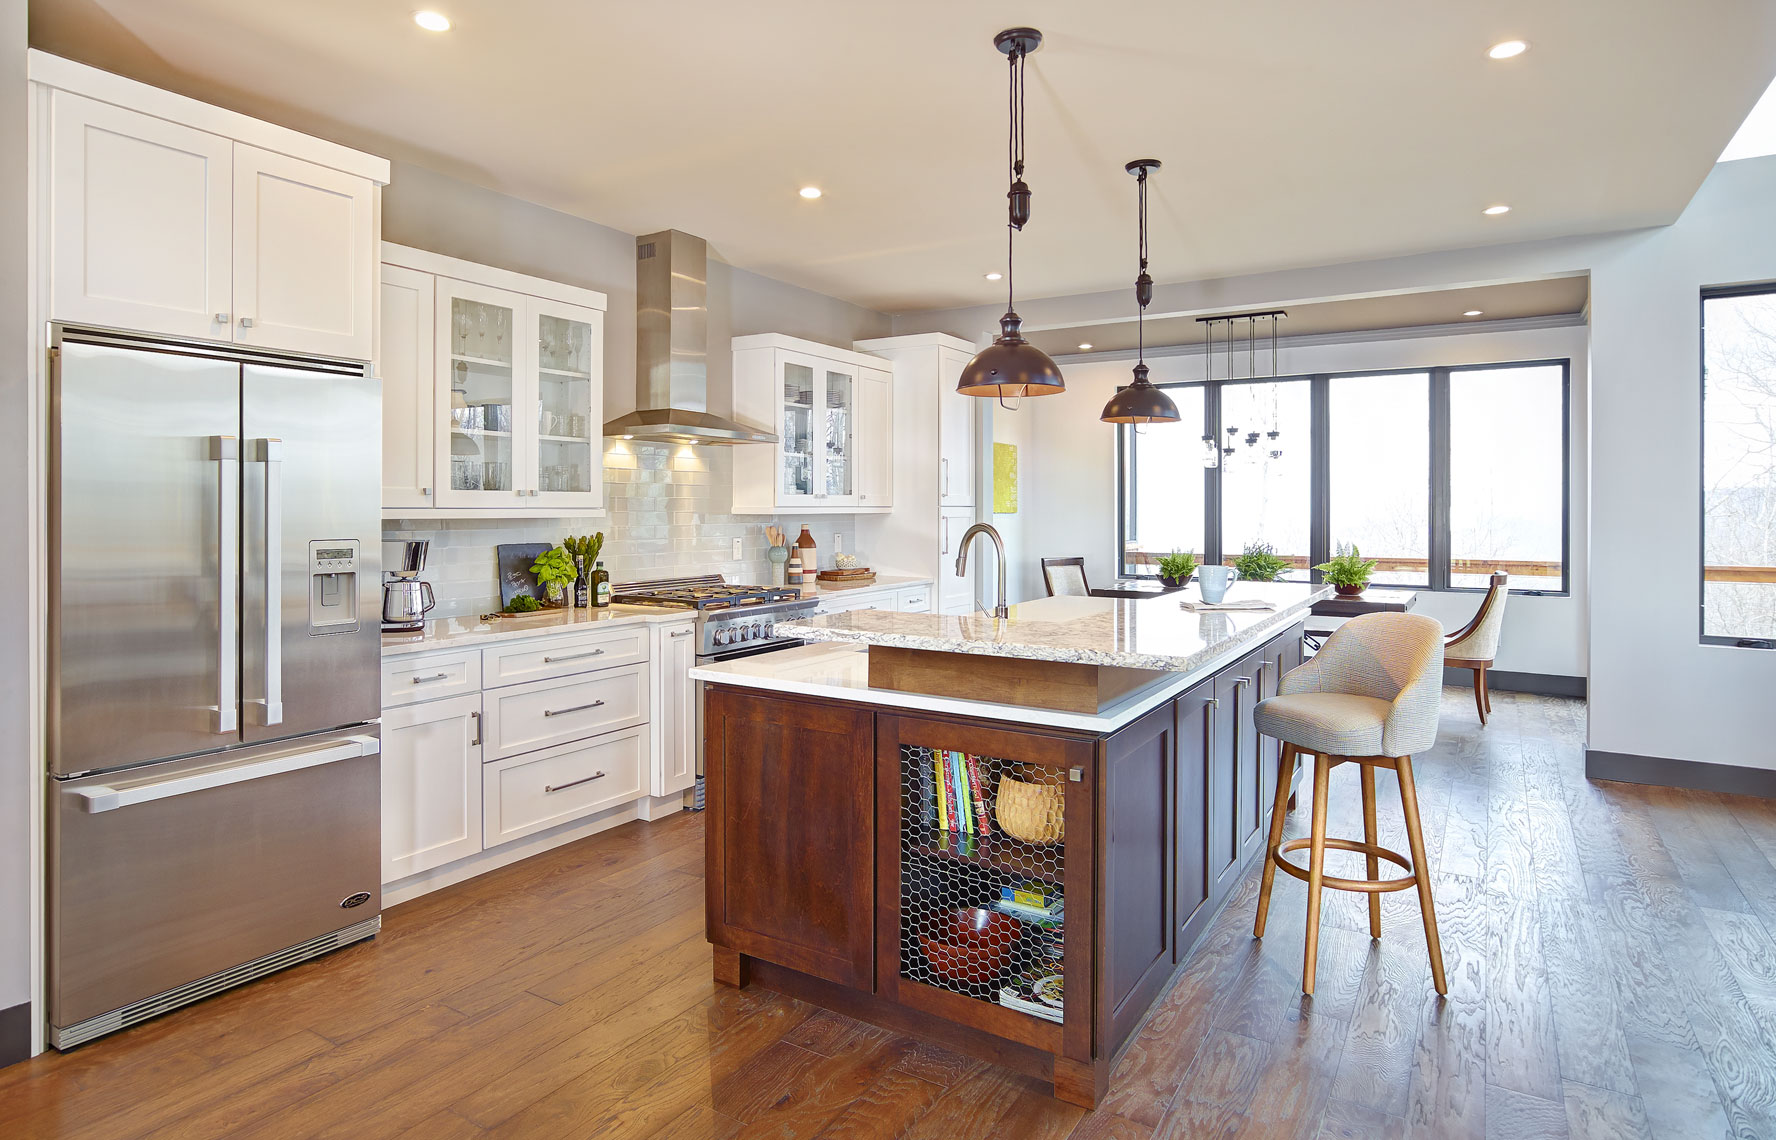 Residential kitchen interior/white cabinets/architectural photo